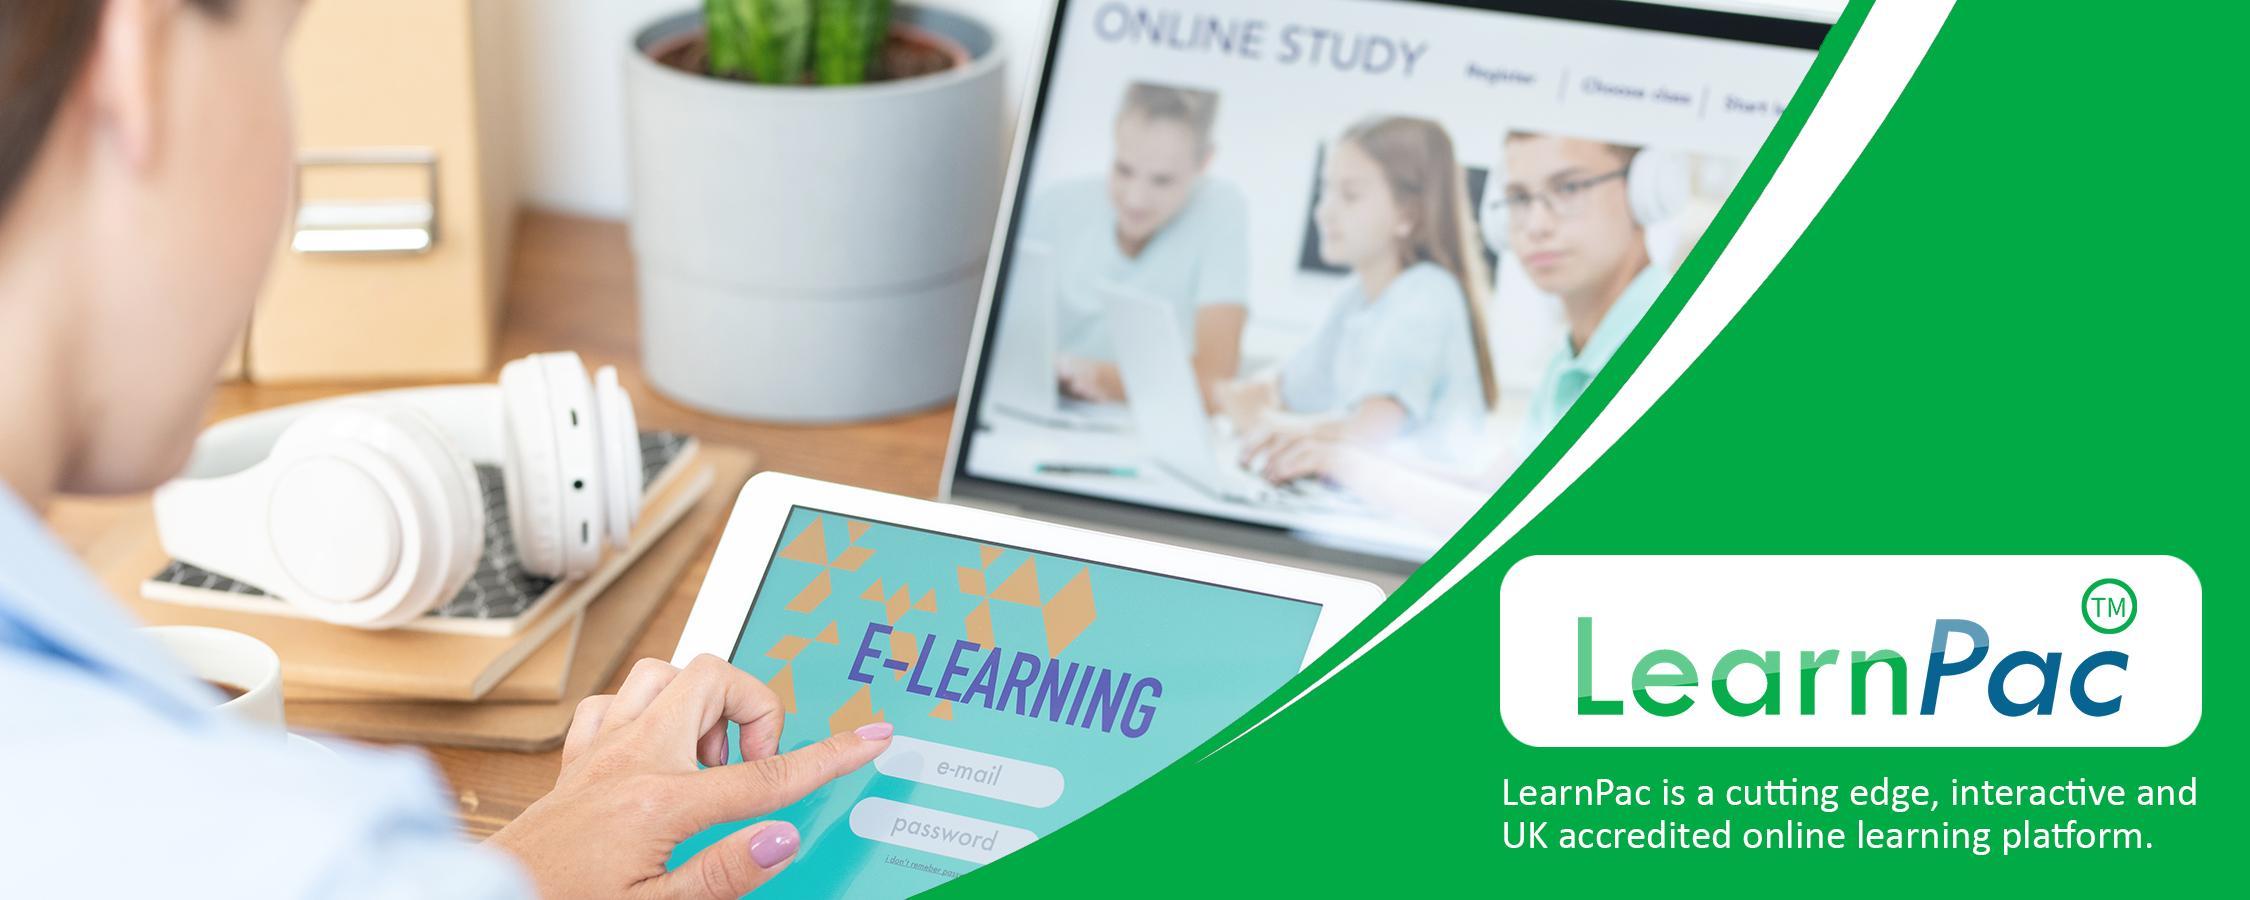 Safeguarding Adults - Online Learning Courses - E-Learning Courses - LearnPac Systems UK -